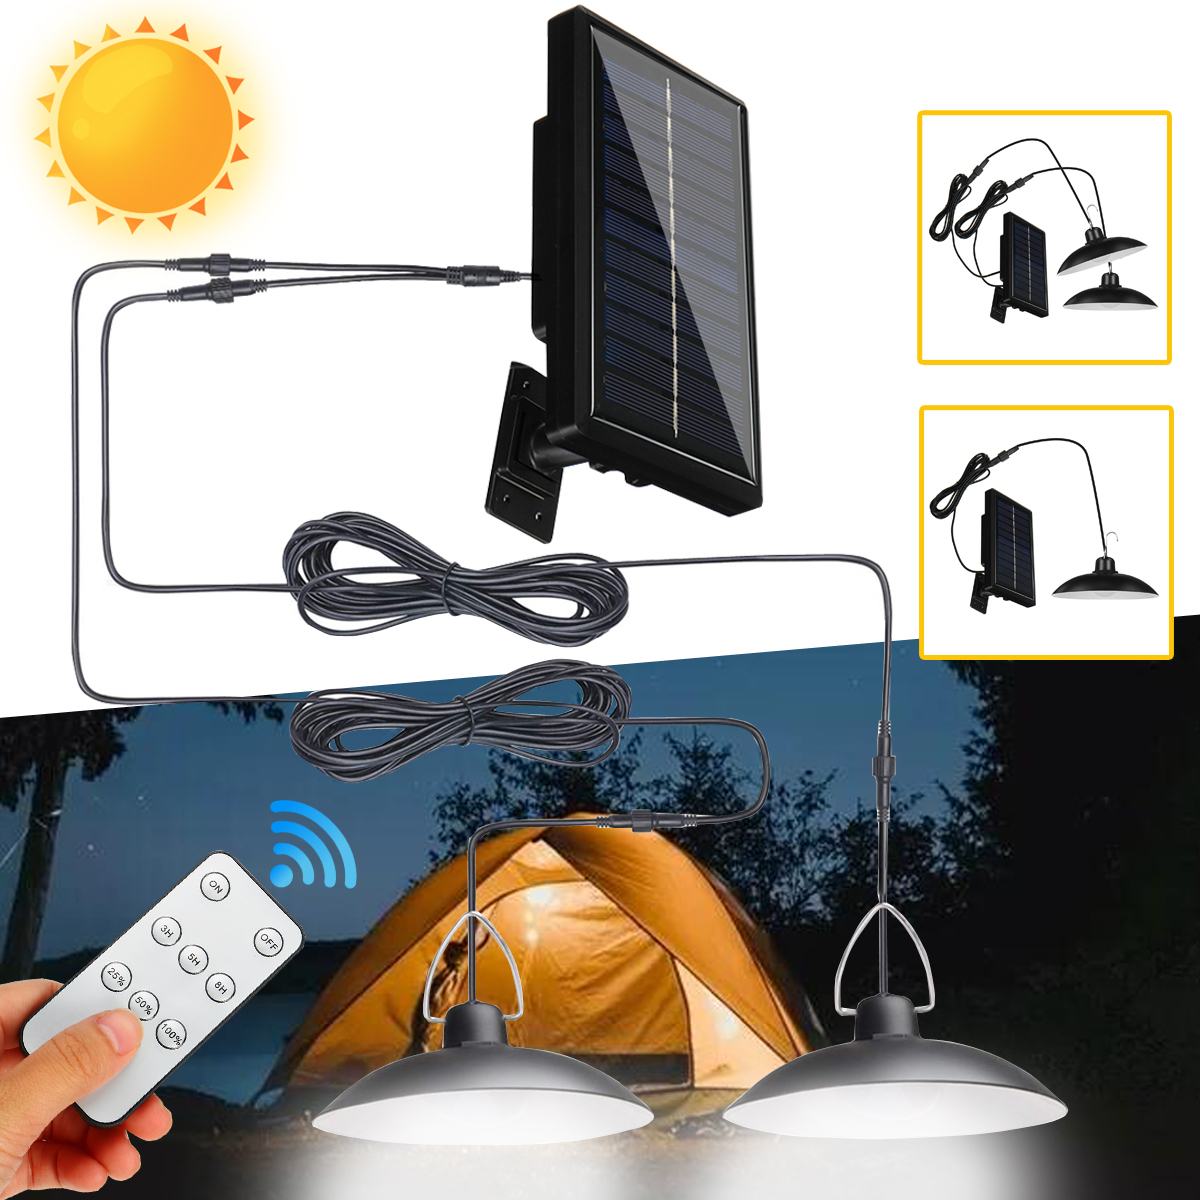 Waterproof Solar LED Pendant Light Outdoor Flood Hanging Garden Lamp + Remote Control - 100W